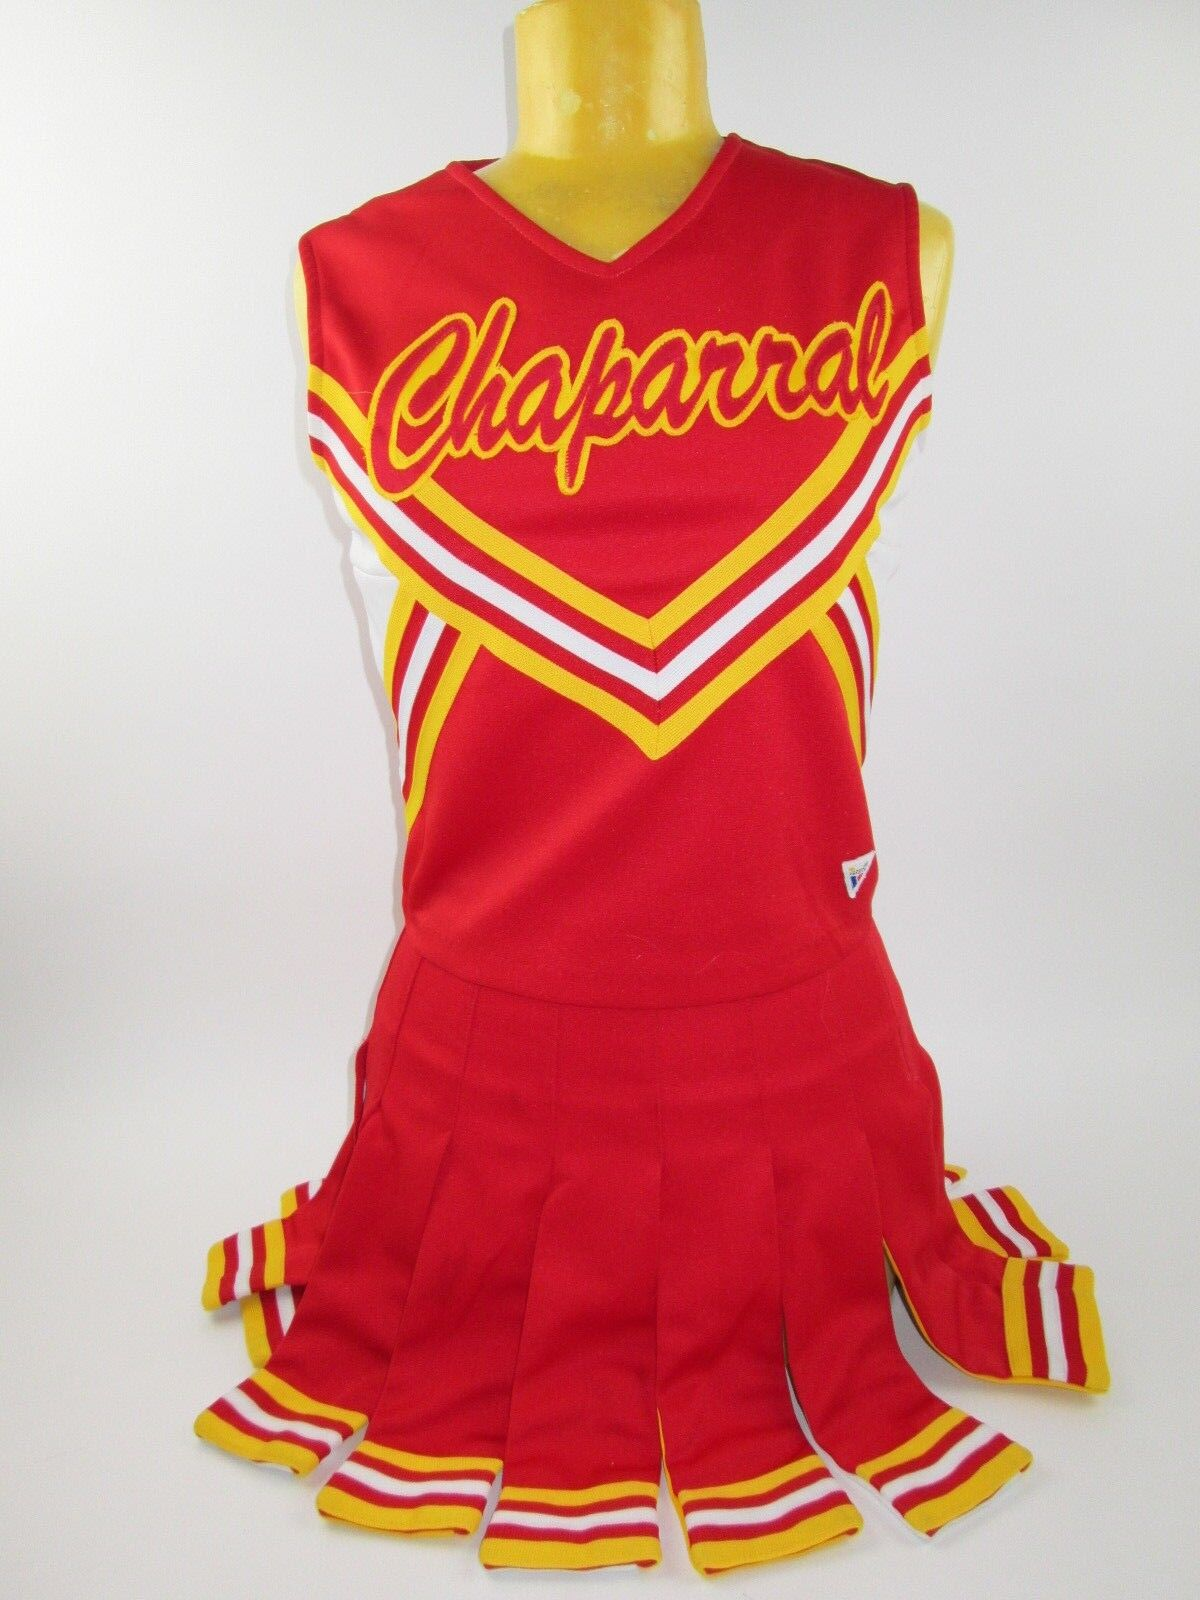 REAL Cheerleader Uniform Outfit Costumes Sizes 32-36  Top 23-27  Skirt Choose